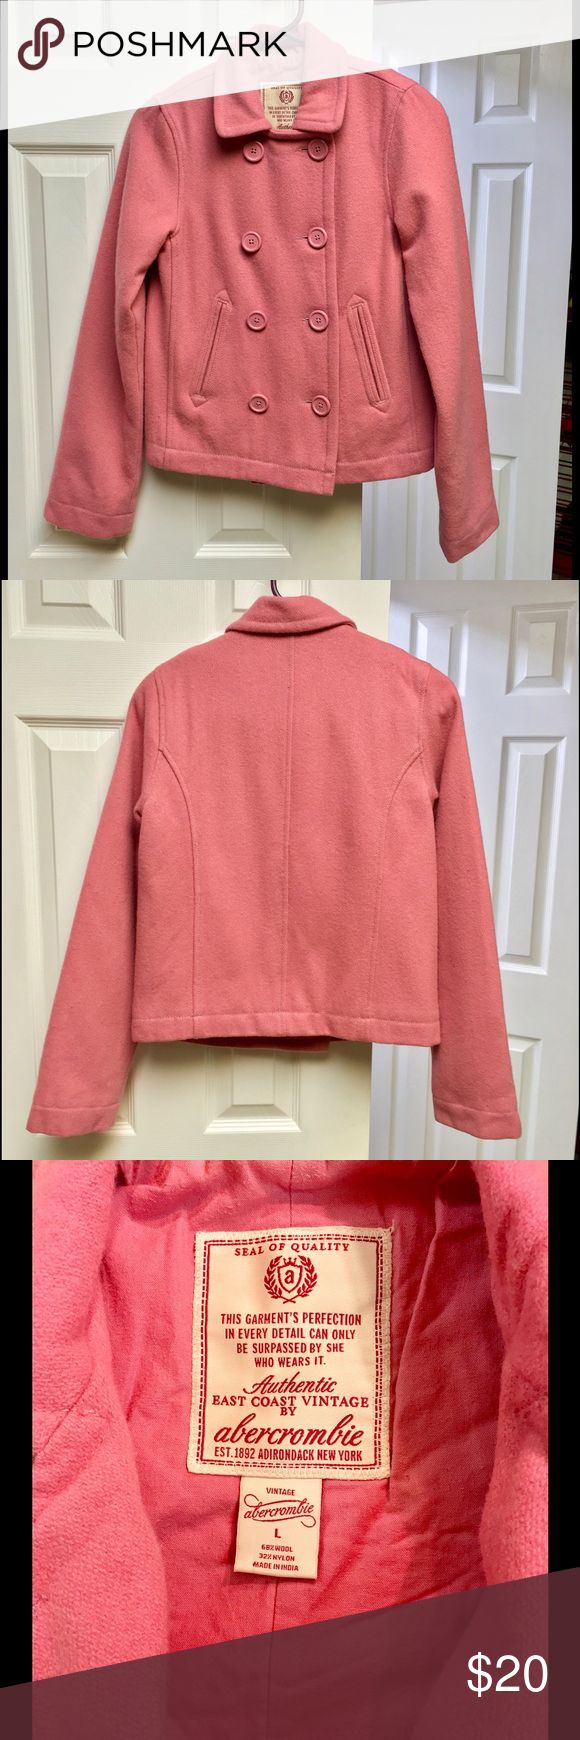 Abercrombie Girls' Pink Coat Lovely salmon pink coat from Abercrombie kids! Very warm. 68% wool 32% nylon. It is in good condition but may have some mild pilling. abercrombie kids Jackets & Coats Pea Coats